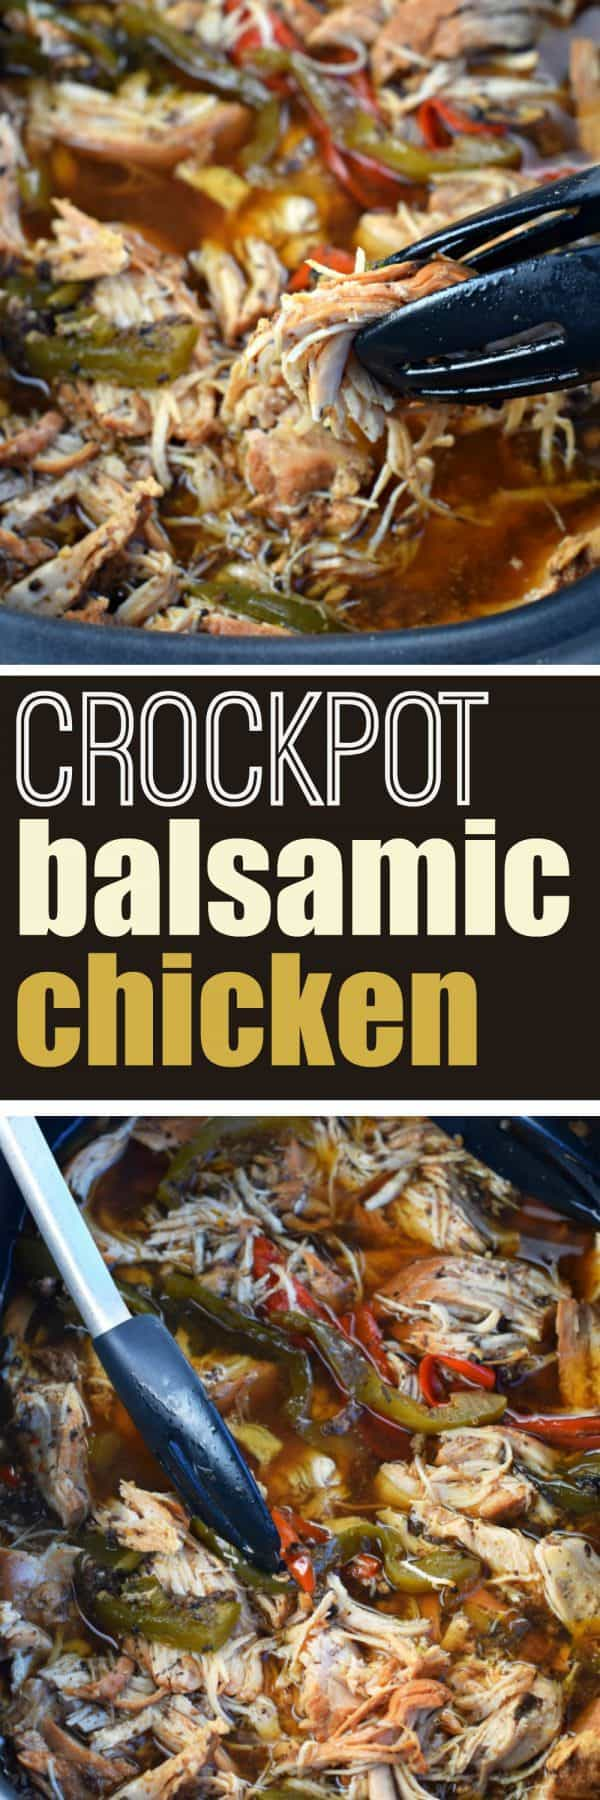 With only a few minutes prep time, you can have this Slow Cooker Balsamic Chicken for dinner tonight! Pull out your crockpot, fix it and forget it!